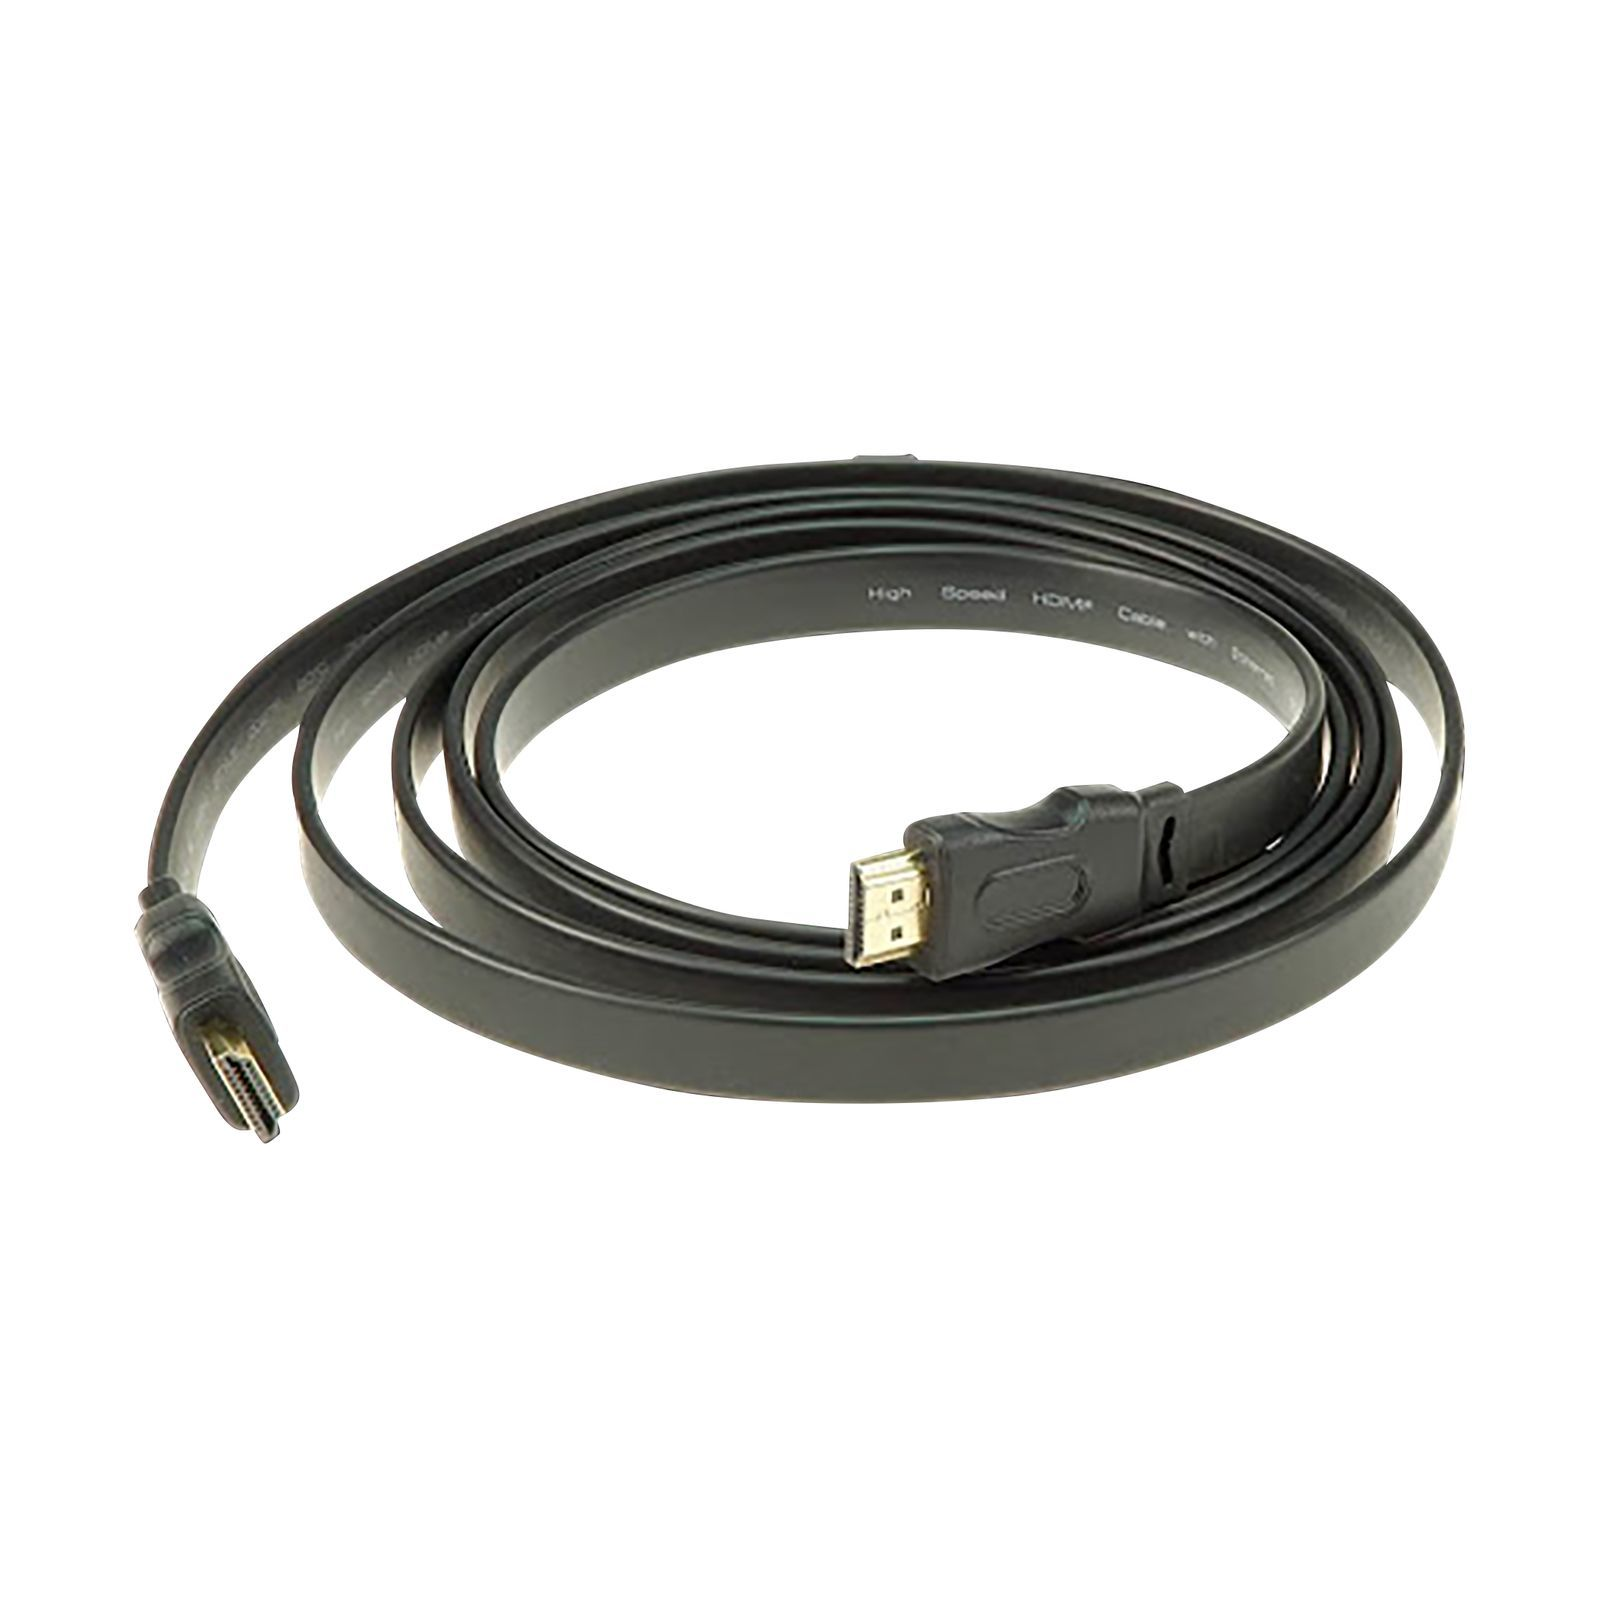 Klotz HDMI 1.4a High Speed 2m Product Image